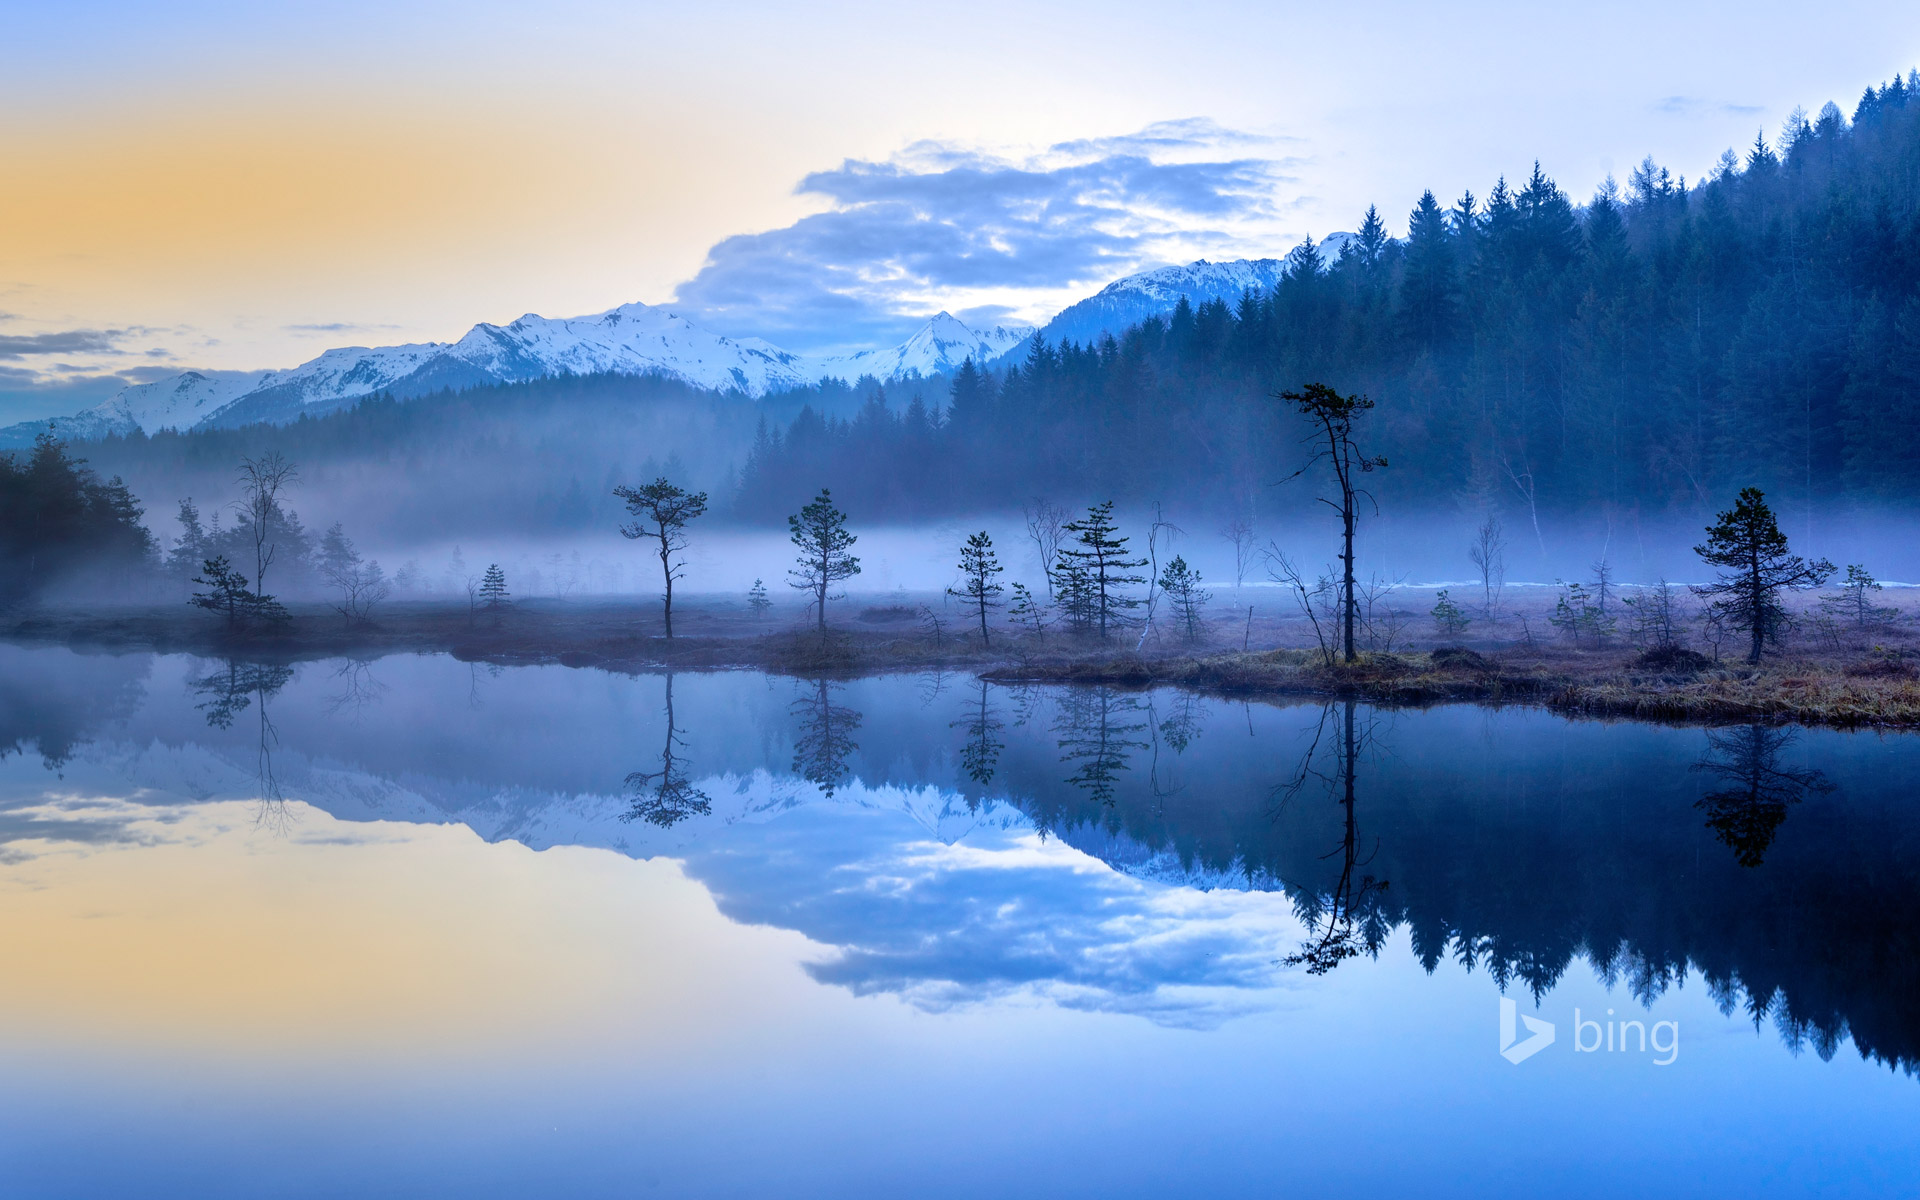 The misty bogs of Pian di Gembro Regional Reserve near Aprica, Italy